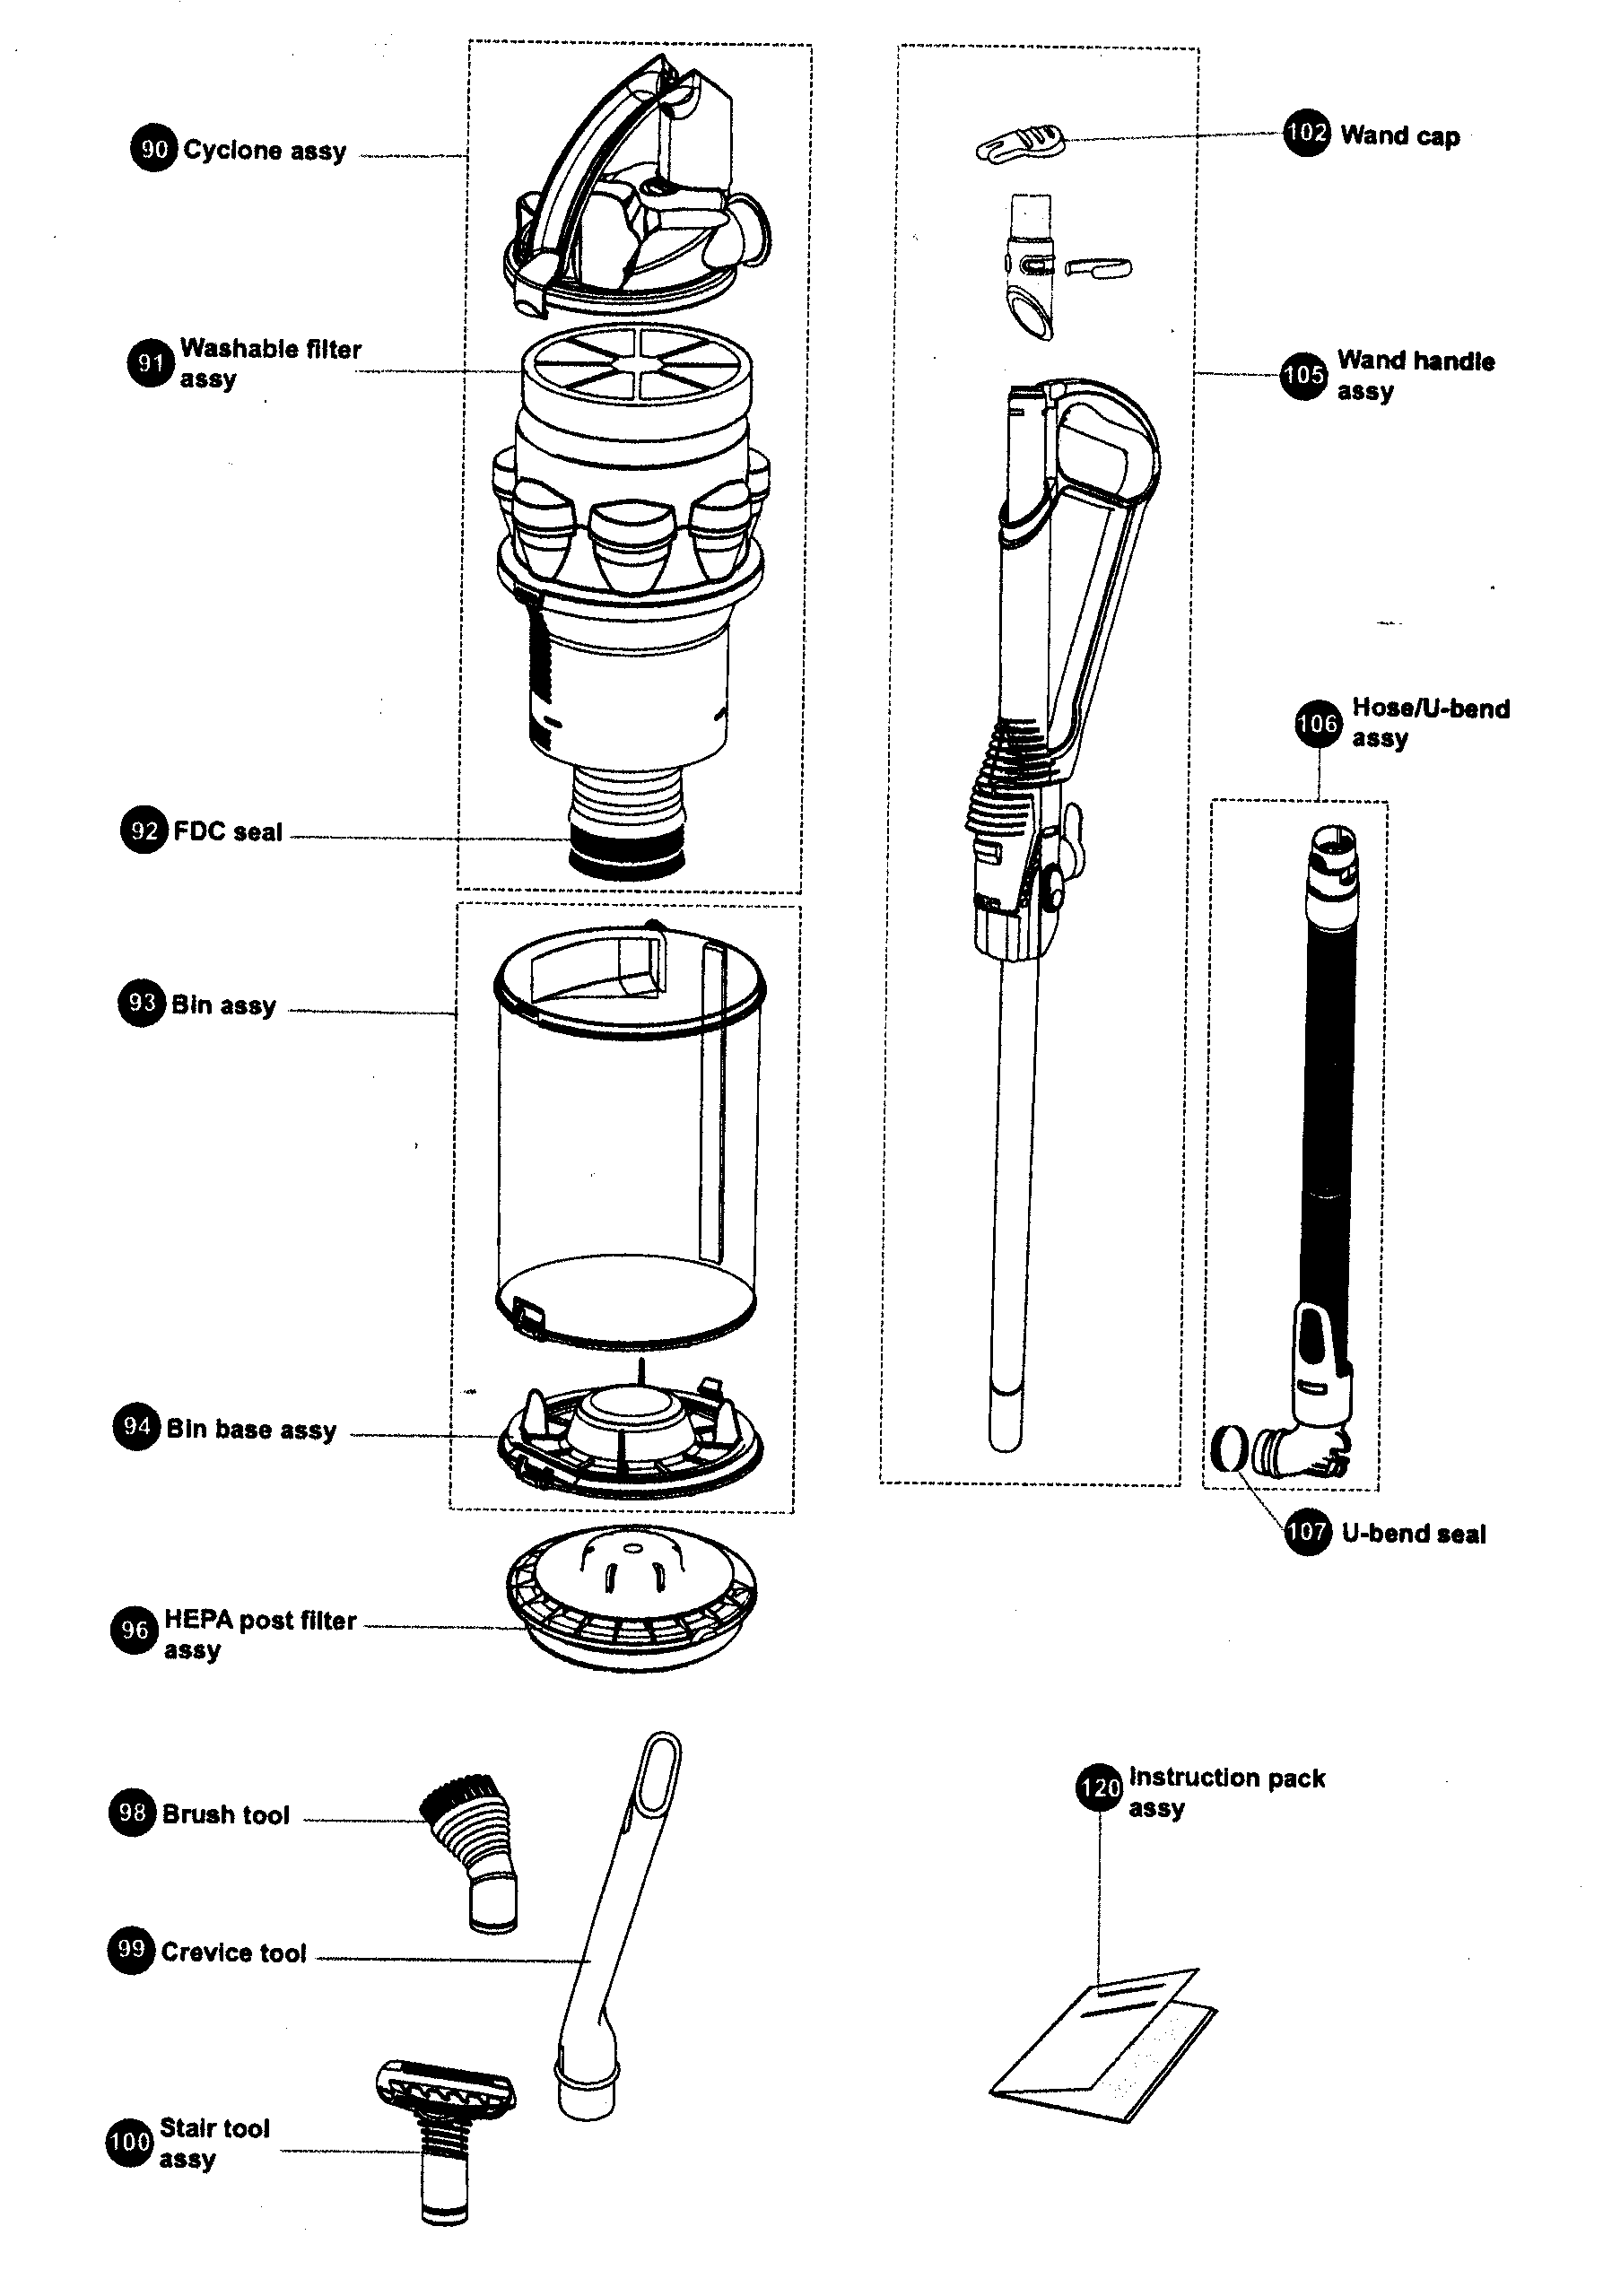 Dyson V6 Animal Parts Diagram | Reviewmotors.co on